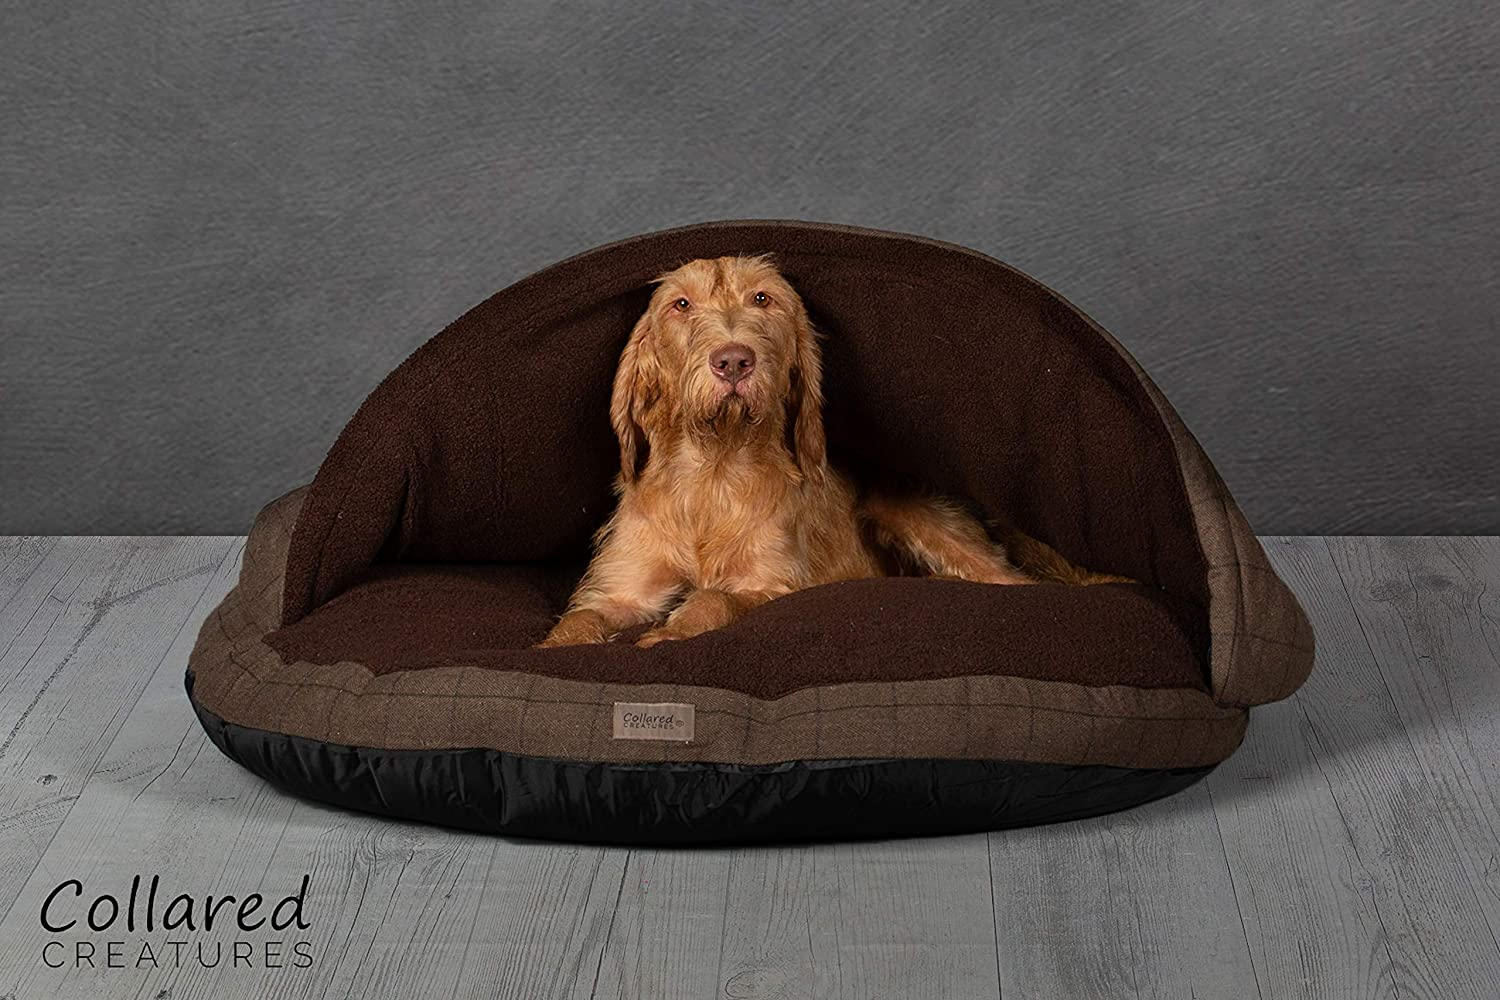 Collared Creatures Dog Cave Bed, Dog Bed, Extra Large 1140mm (45 ) Brown Herringbone